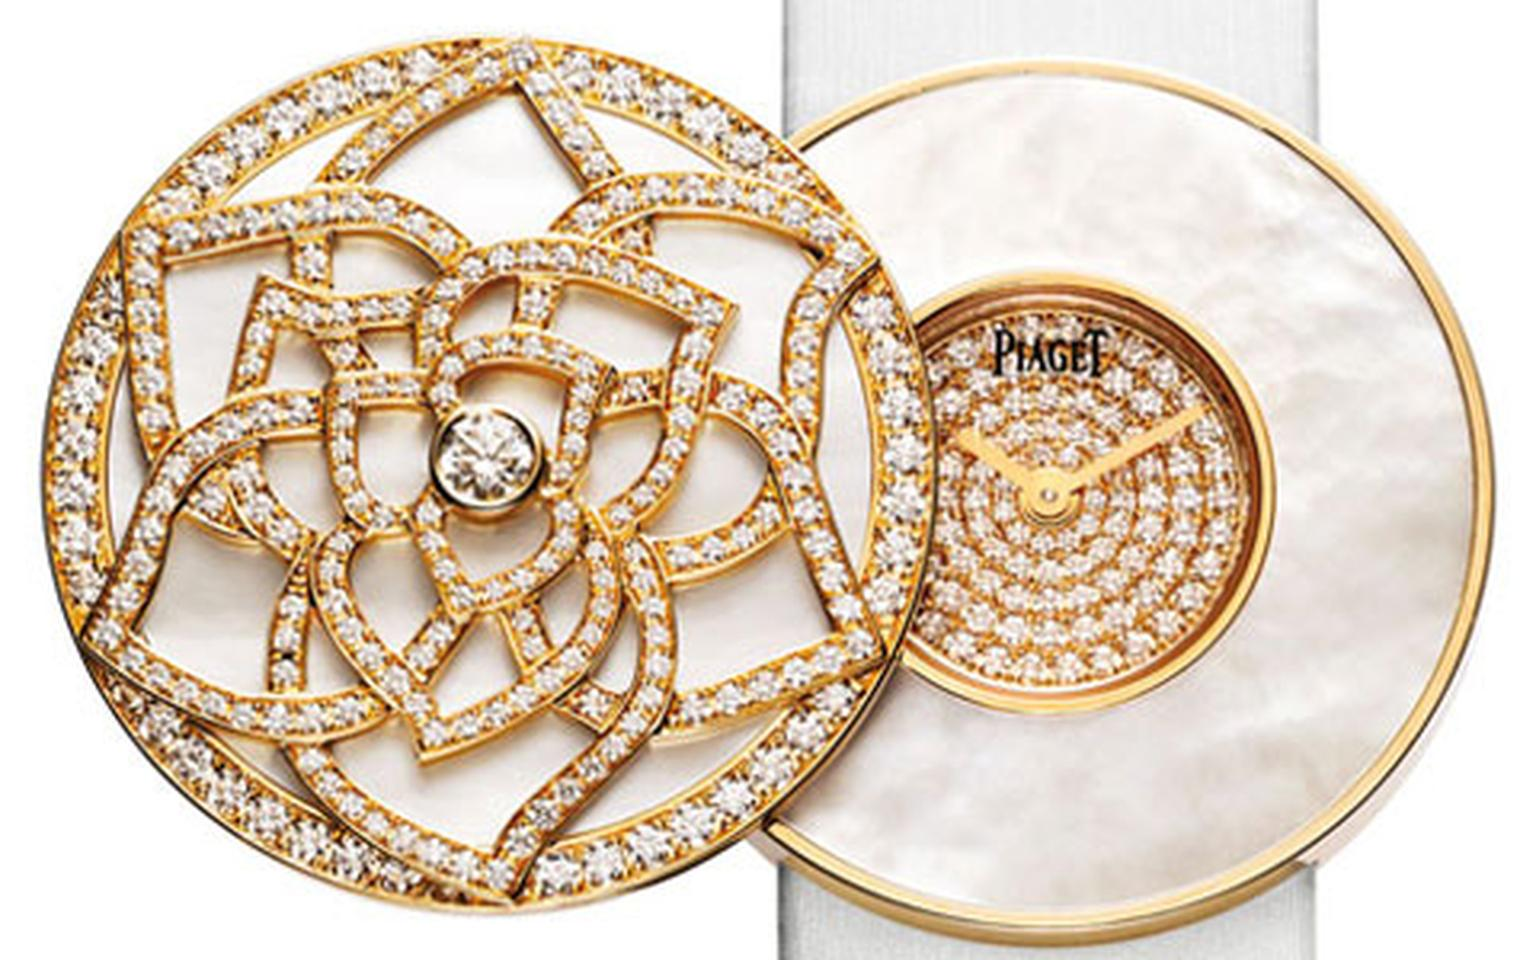 Piaget.-Limelight-Garden-Party-Secret-Watch.-Pink-gold,-white-mother-of-pearl-and-diamonds.-POA-HP